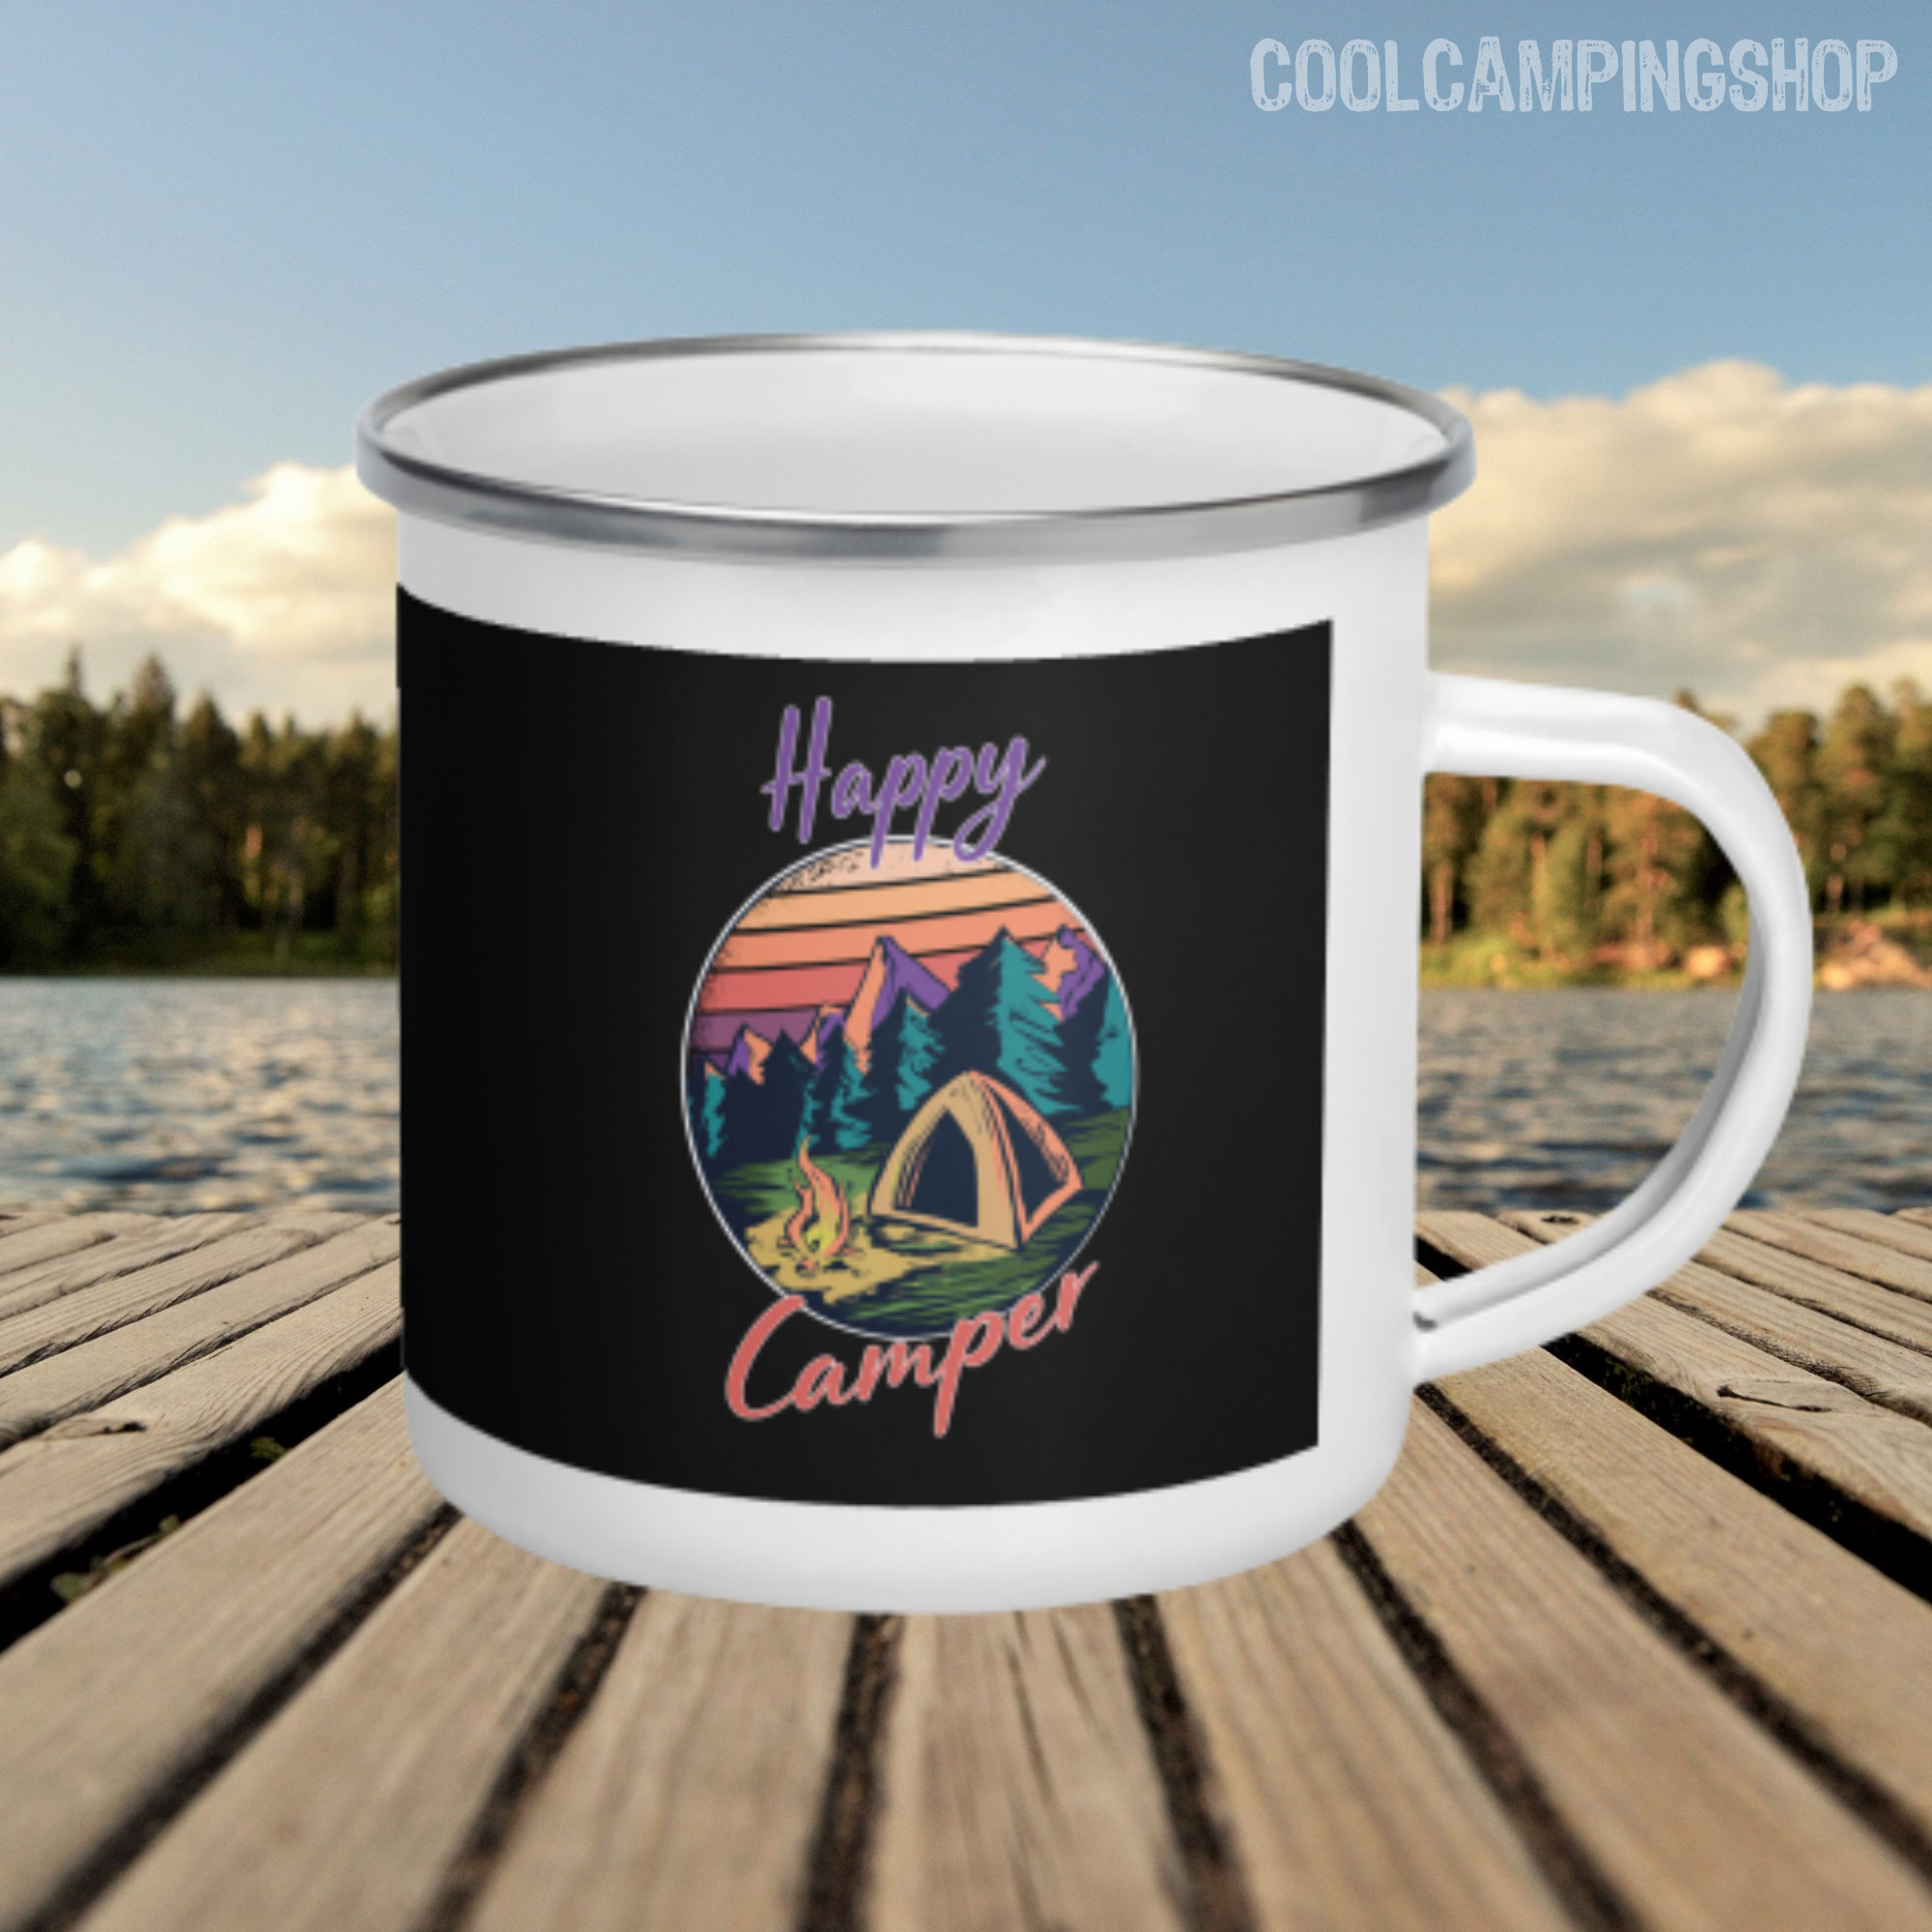 Happy Camper Cool Camping Camperbekleidung